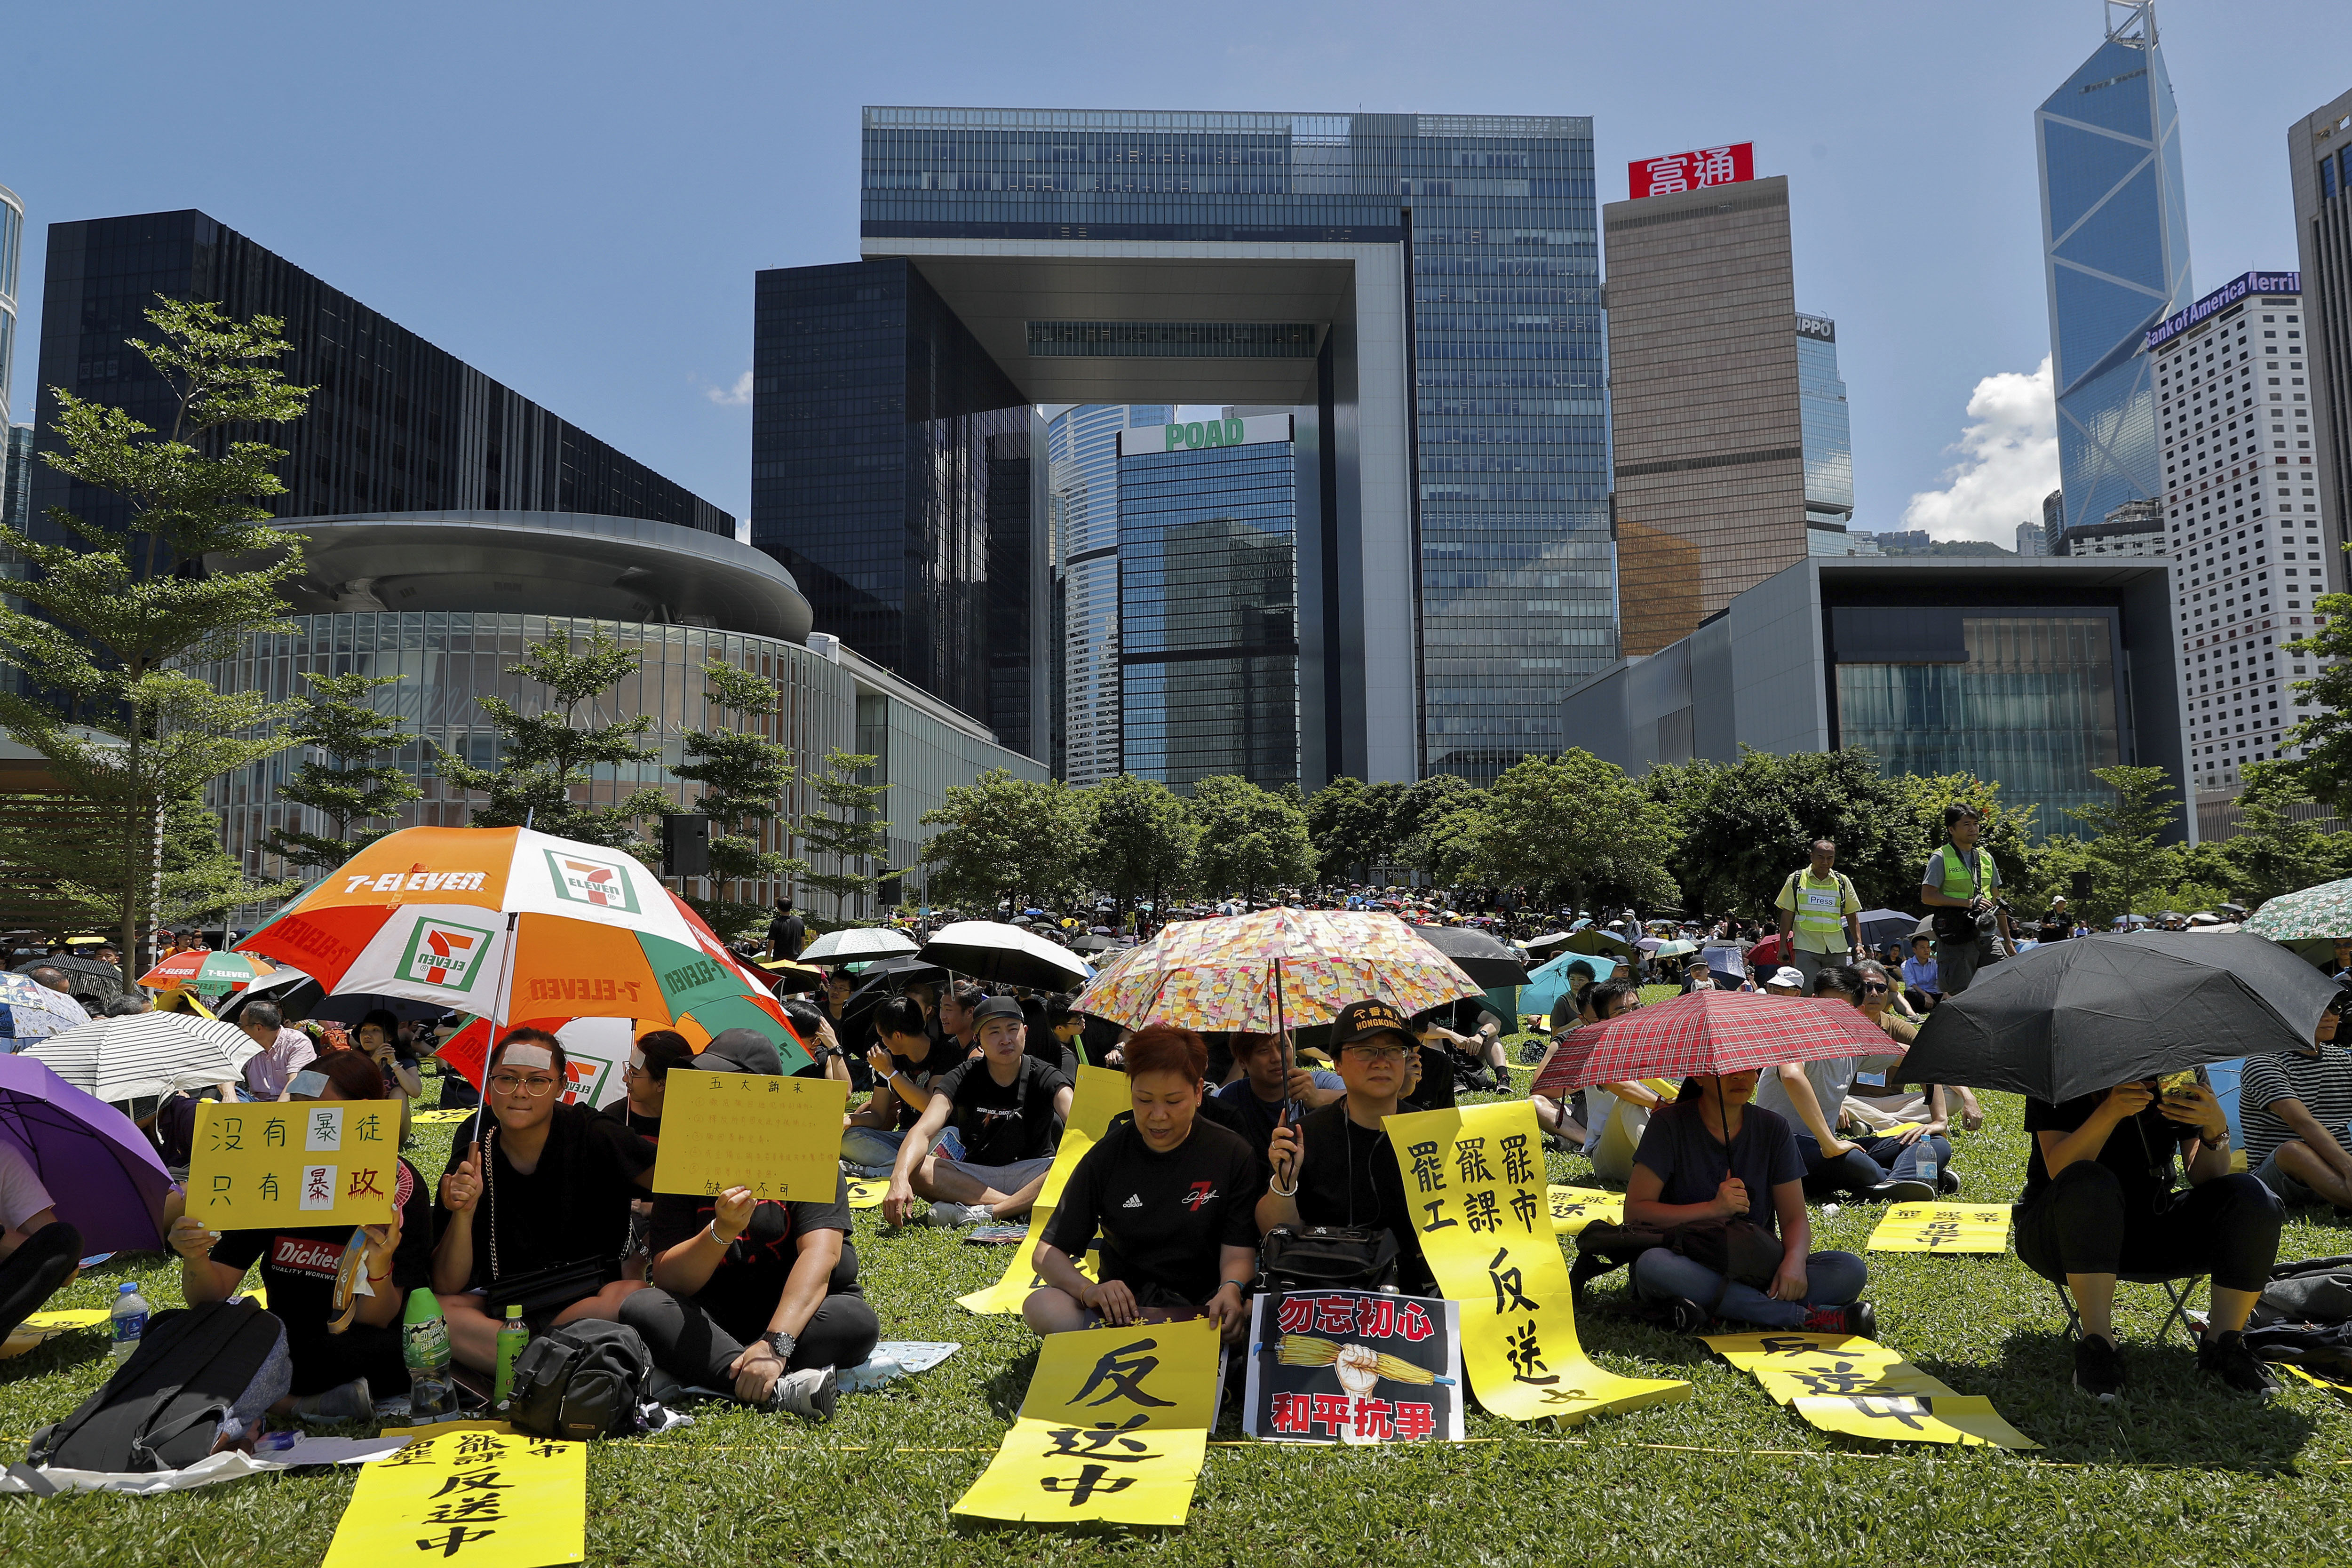 The Latest: Protesters fill public spaces in Hong Kong